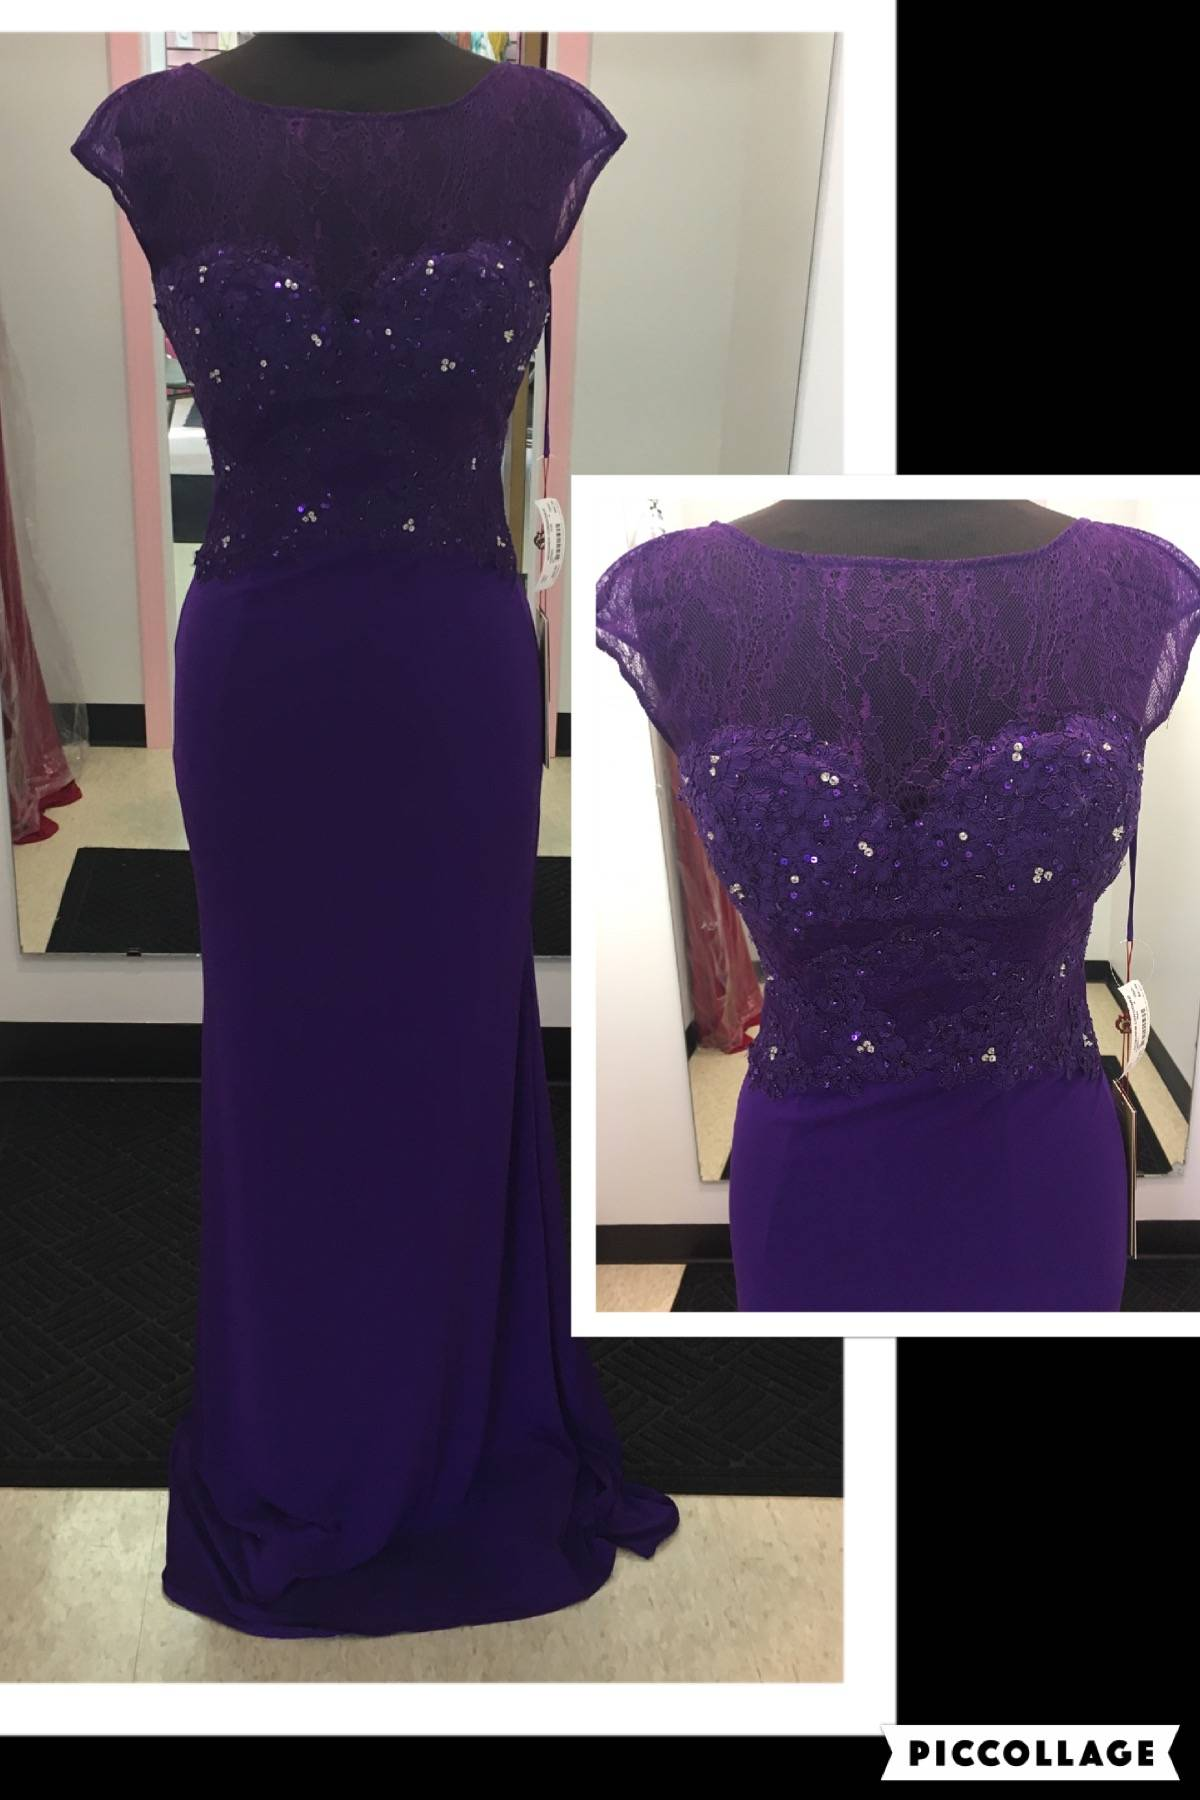 NWT FORMAL GOWN SIZE 6 $99.99